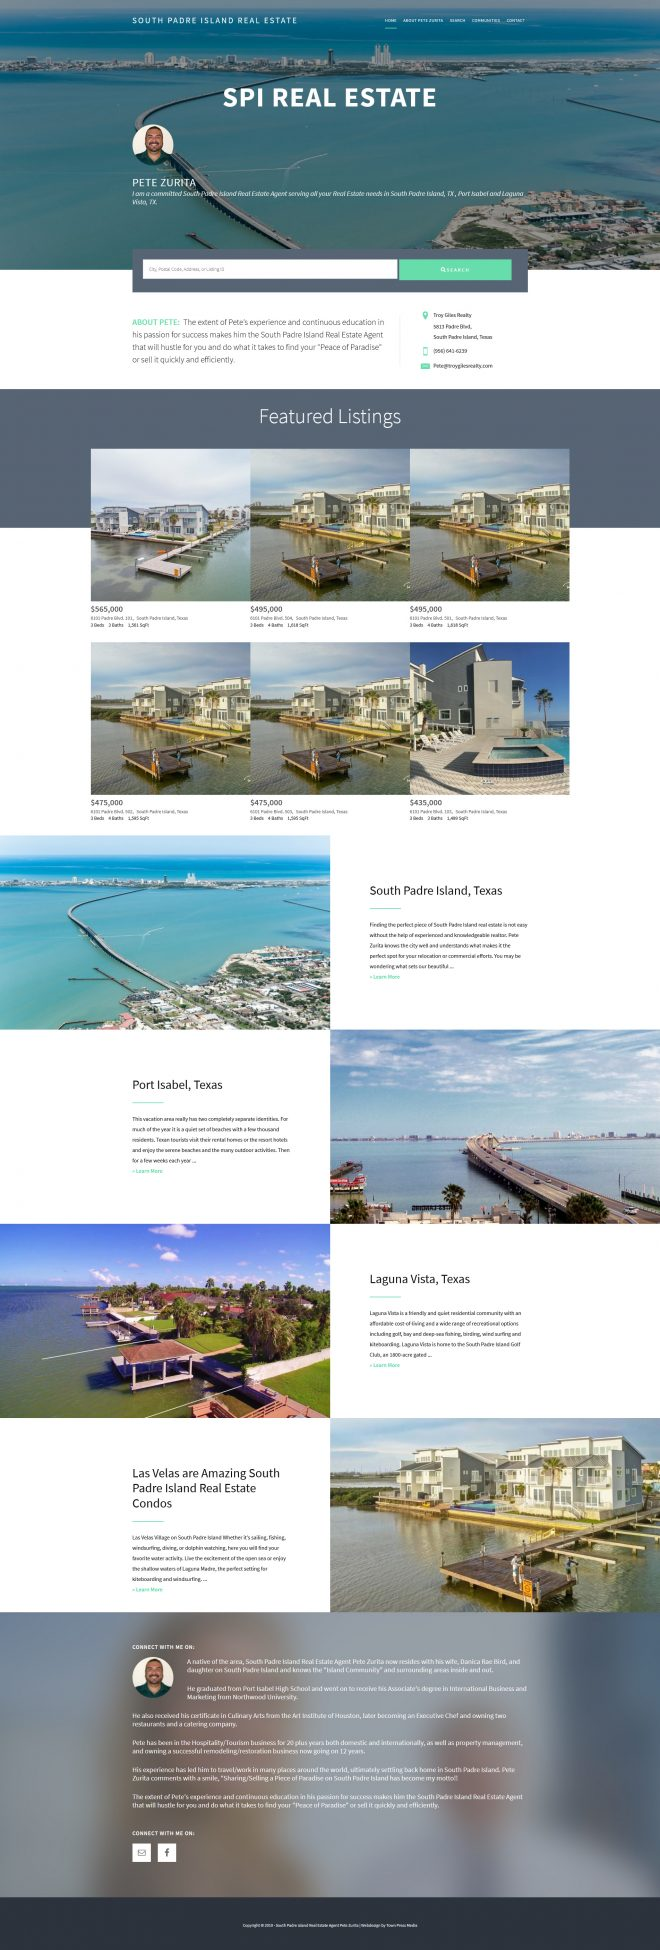 South Padre Island Real Estate Website Design by Town Press Media 512-522-9008